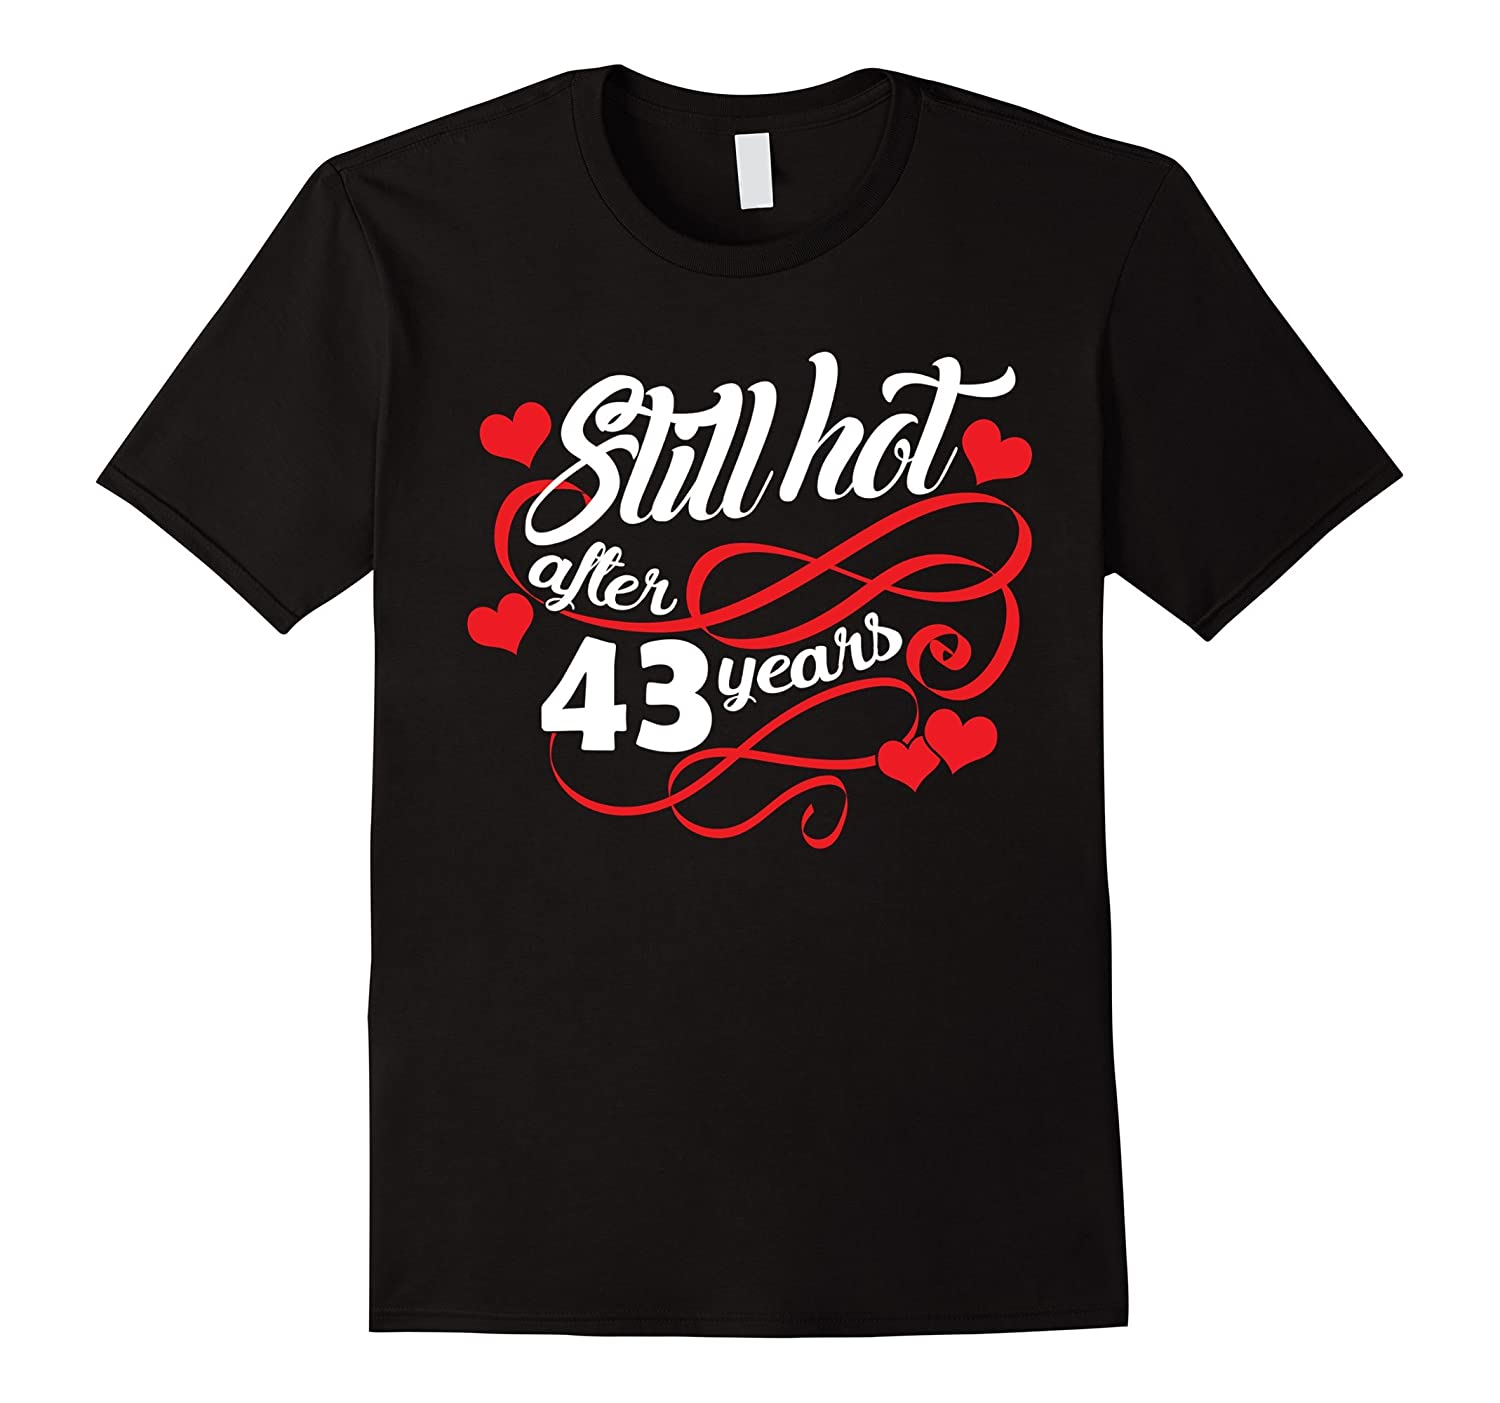 43rd Wedding Anniversary T Shirt For Husband And Wife Pl Polozatee